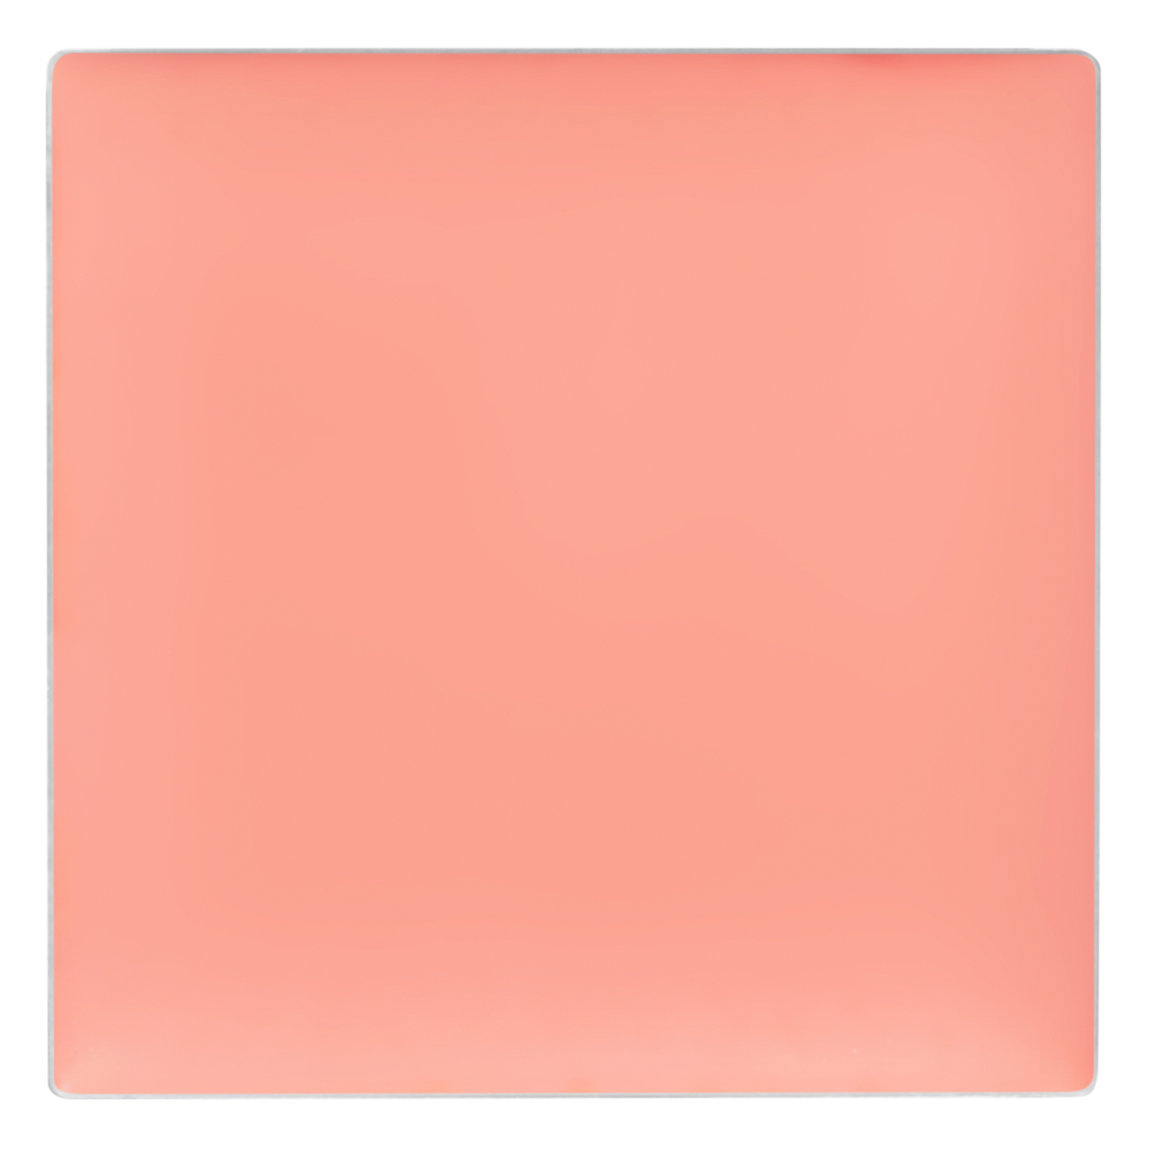 Kjaer Weis Cream Blush Refill Precious alternative view 1 - product swatch.